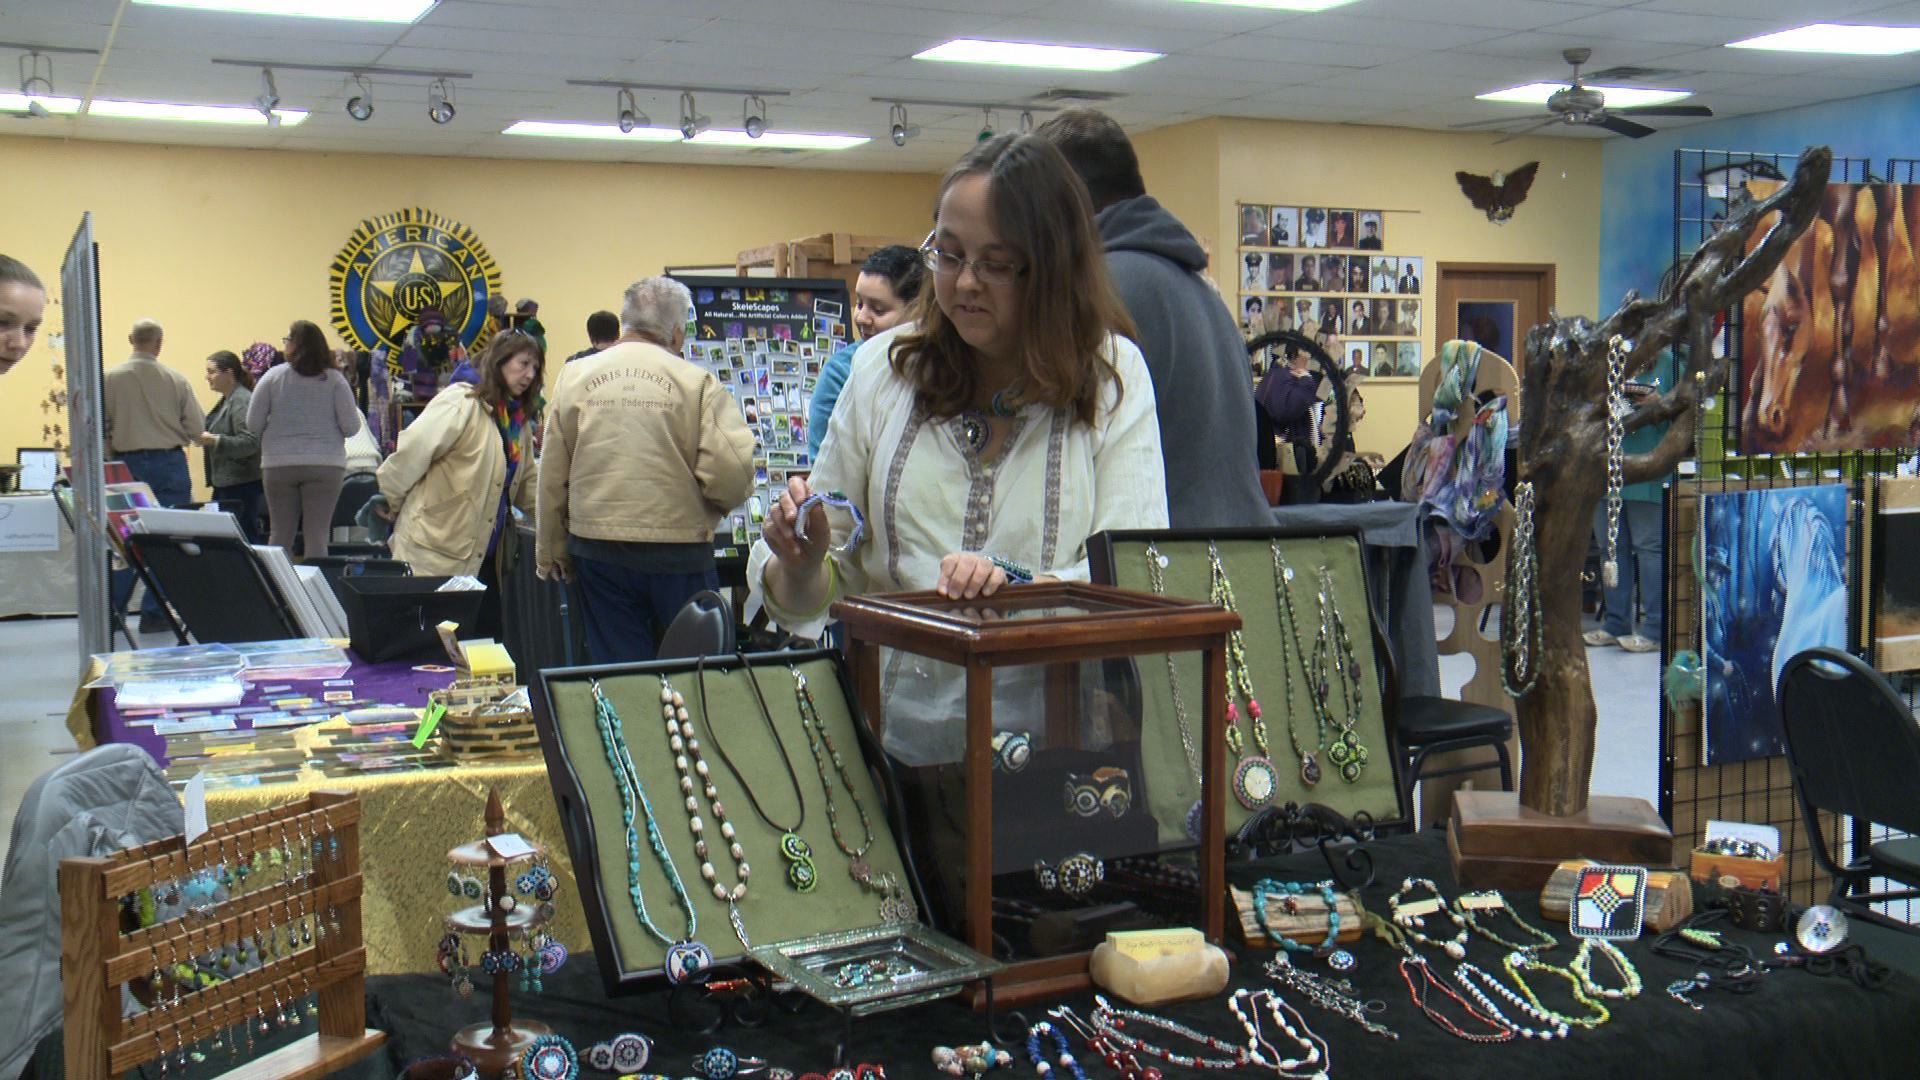 Betsy Hemping of Mitchellville displays Native American art at the Small Business Sunday in Des Moines. (Roger Riley photo)